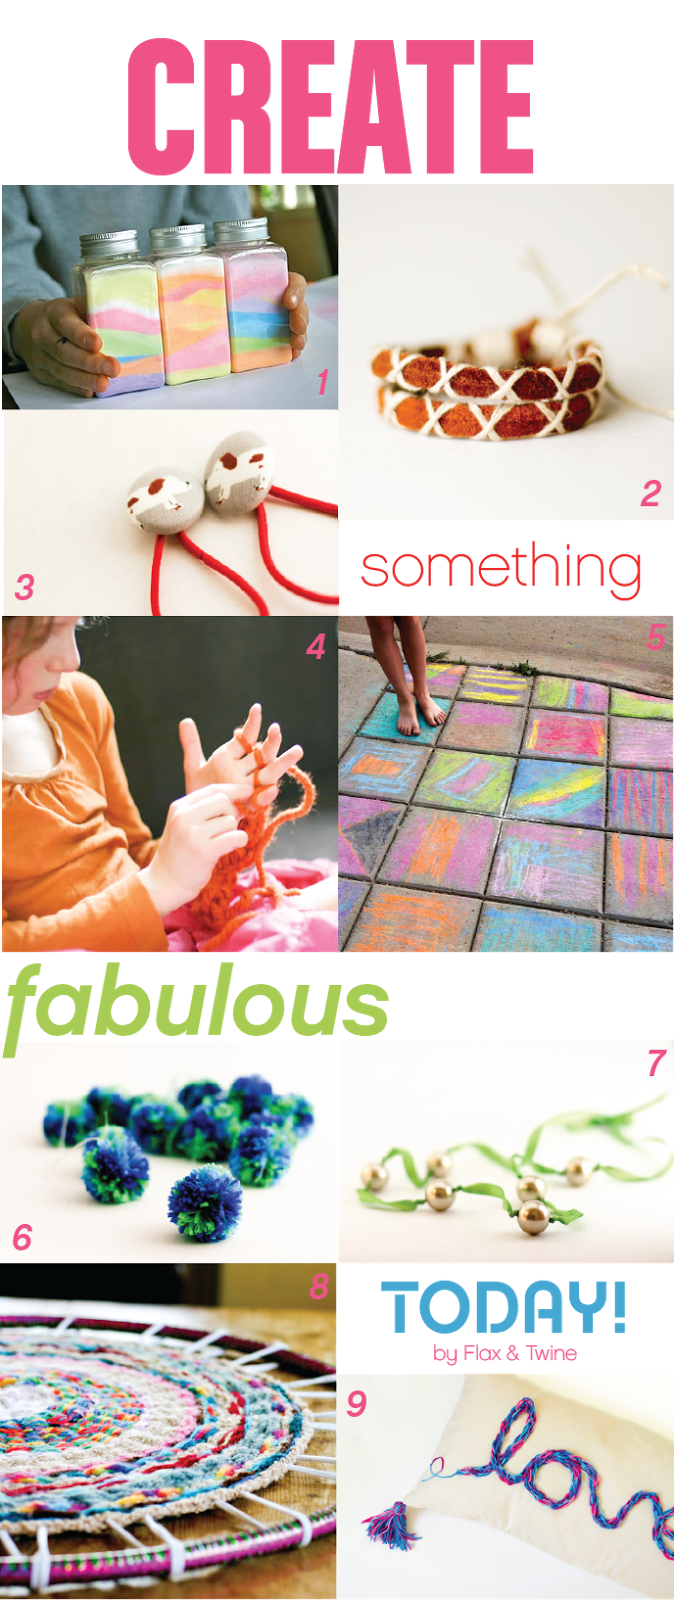 9 Projects You'll Love To Make With Your Kids From Flax and Twine